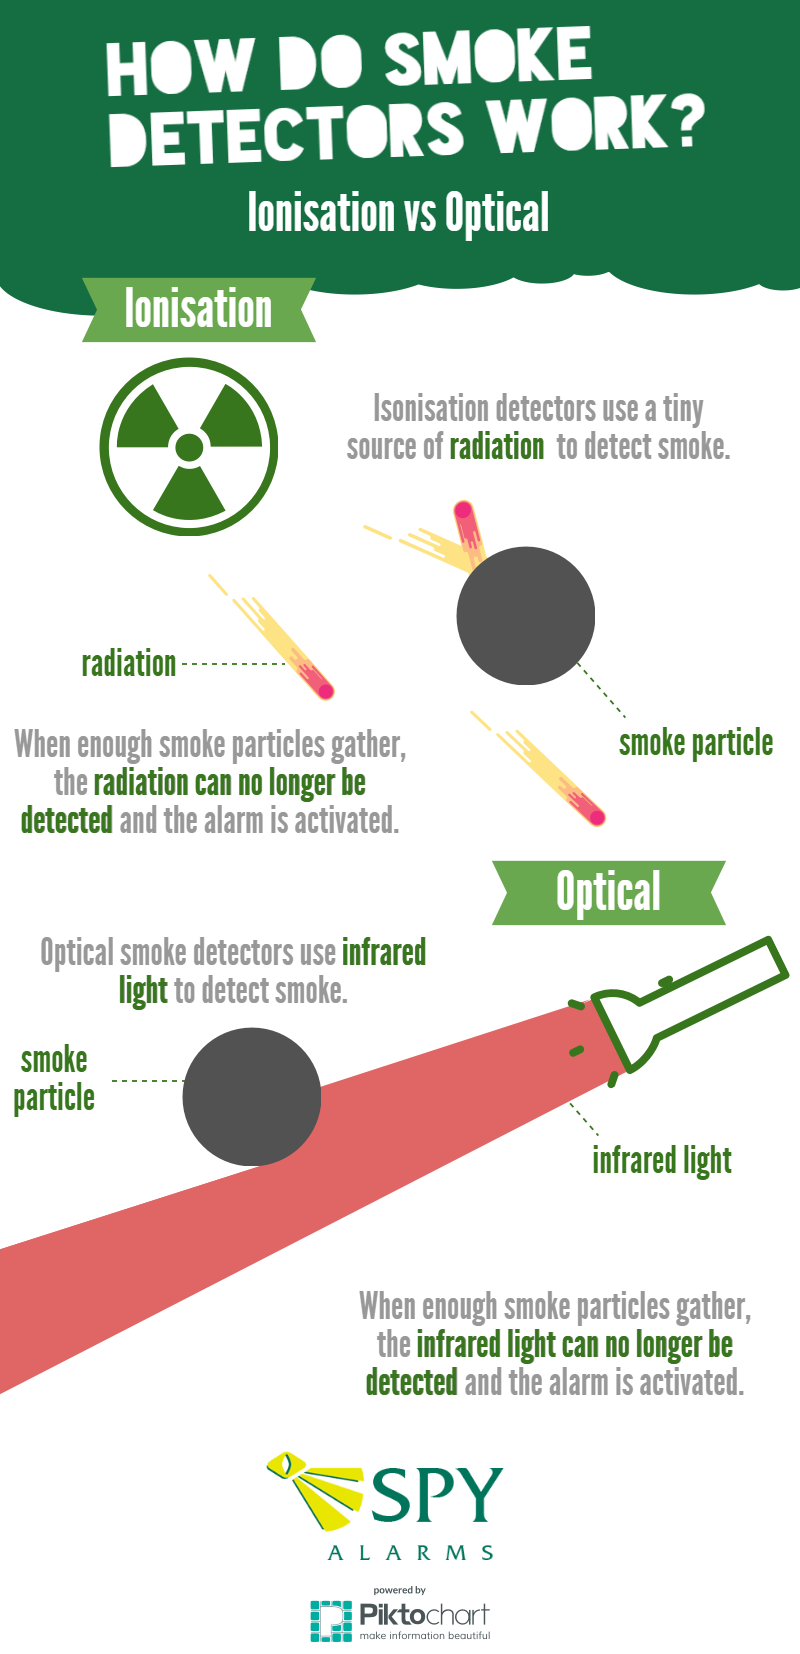 how does an optical smoke detector work-1